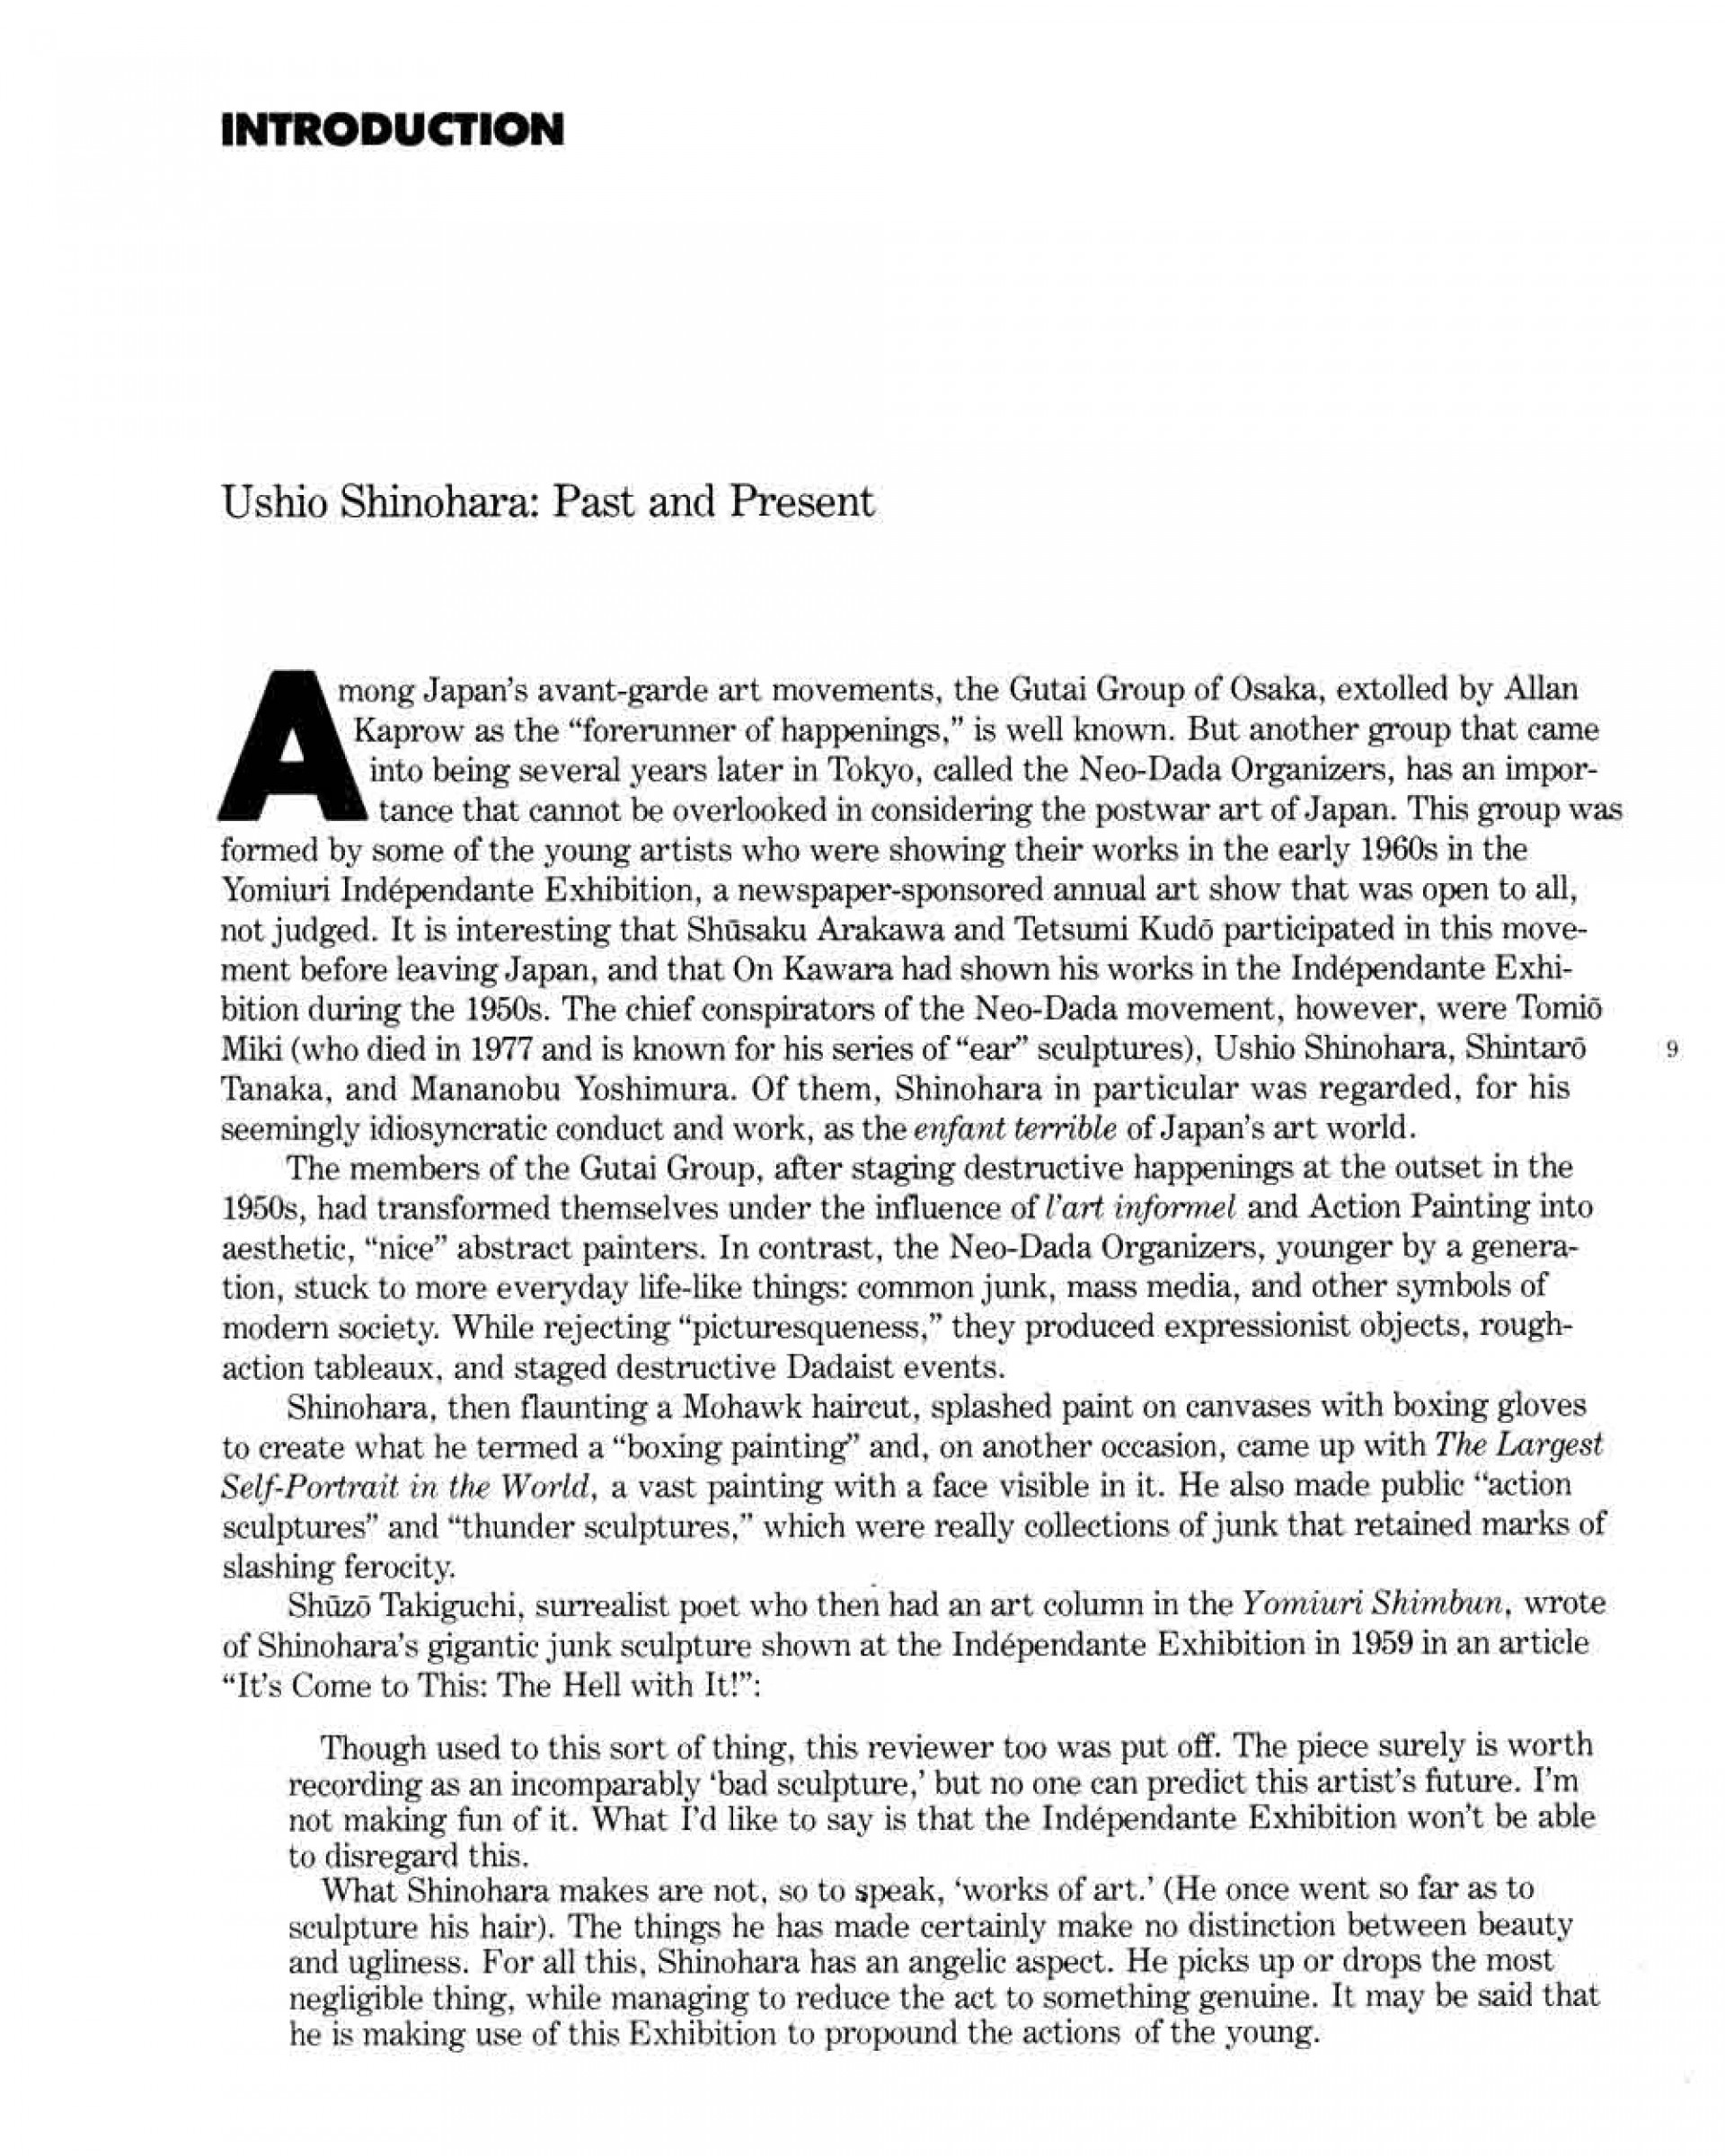 007 How To Cite In Essay Ushio Shinohara Past And Present Pg 1 Staggering Images Text Harvard Style Website Apa Mla 1920